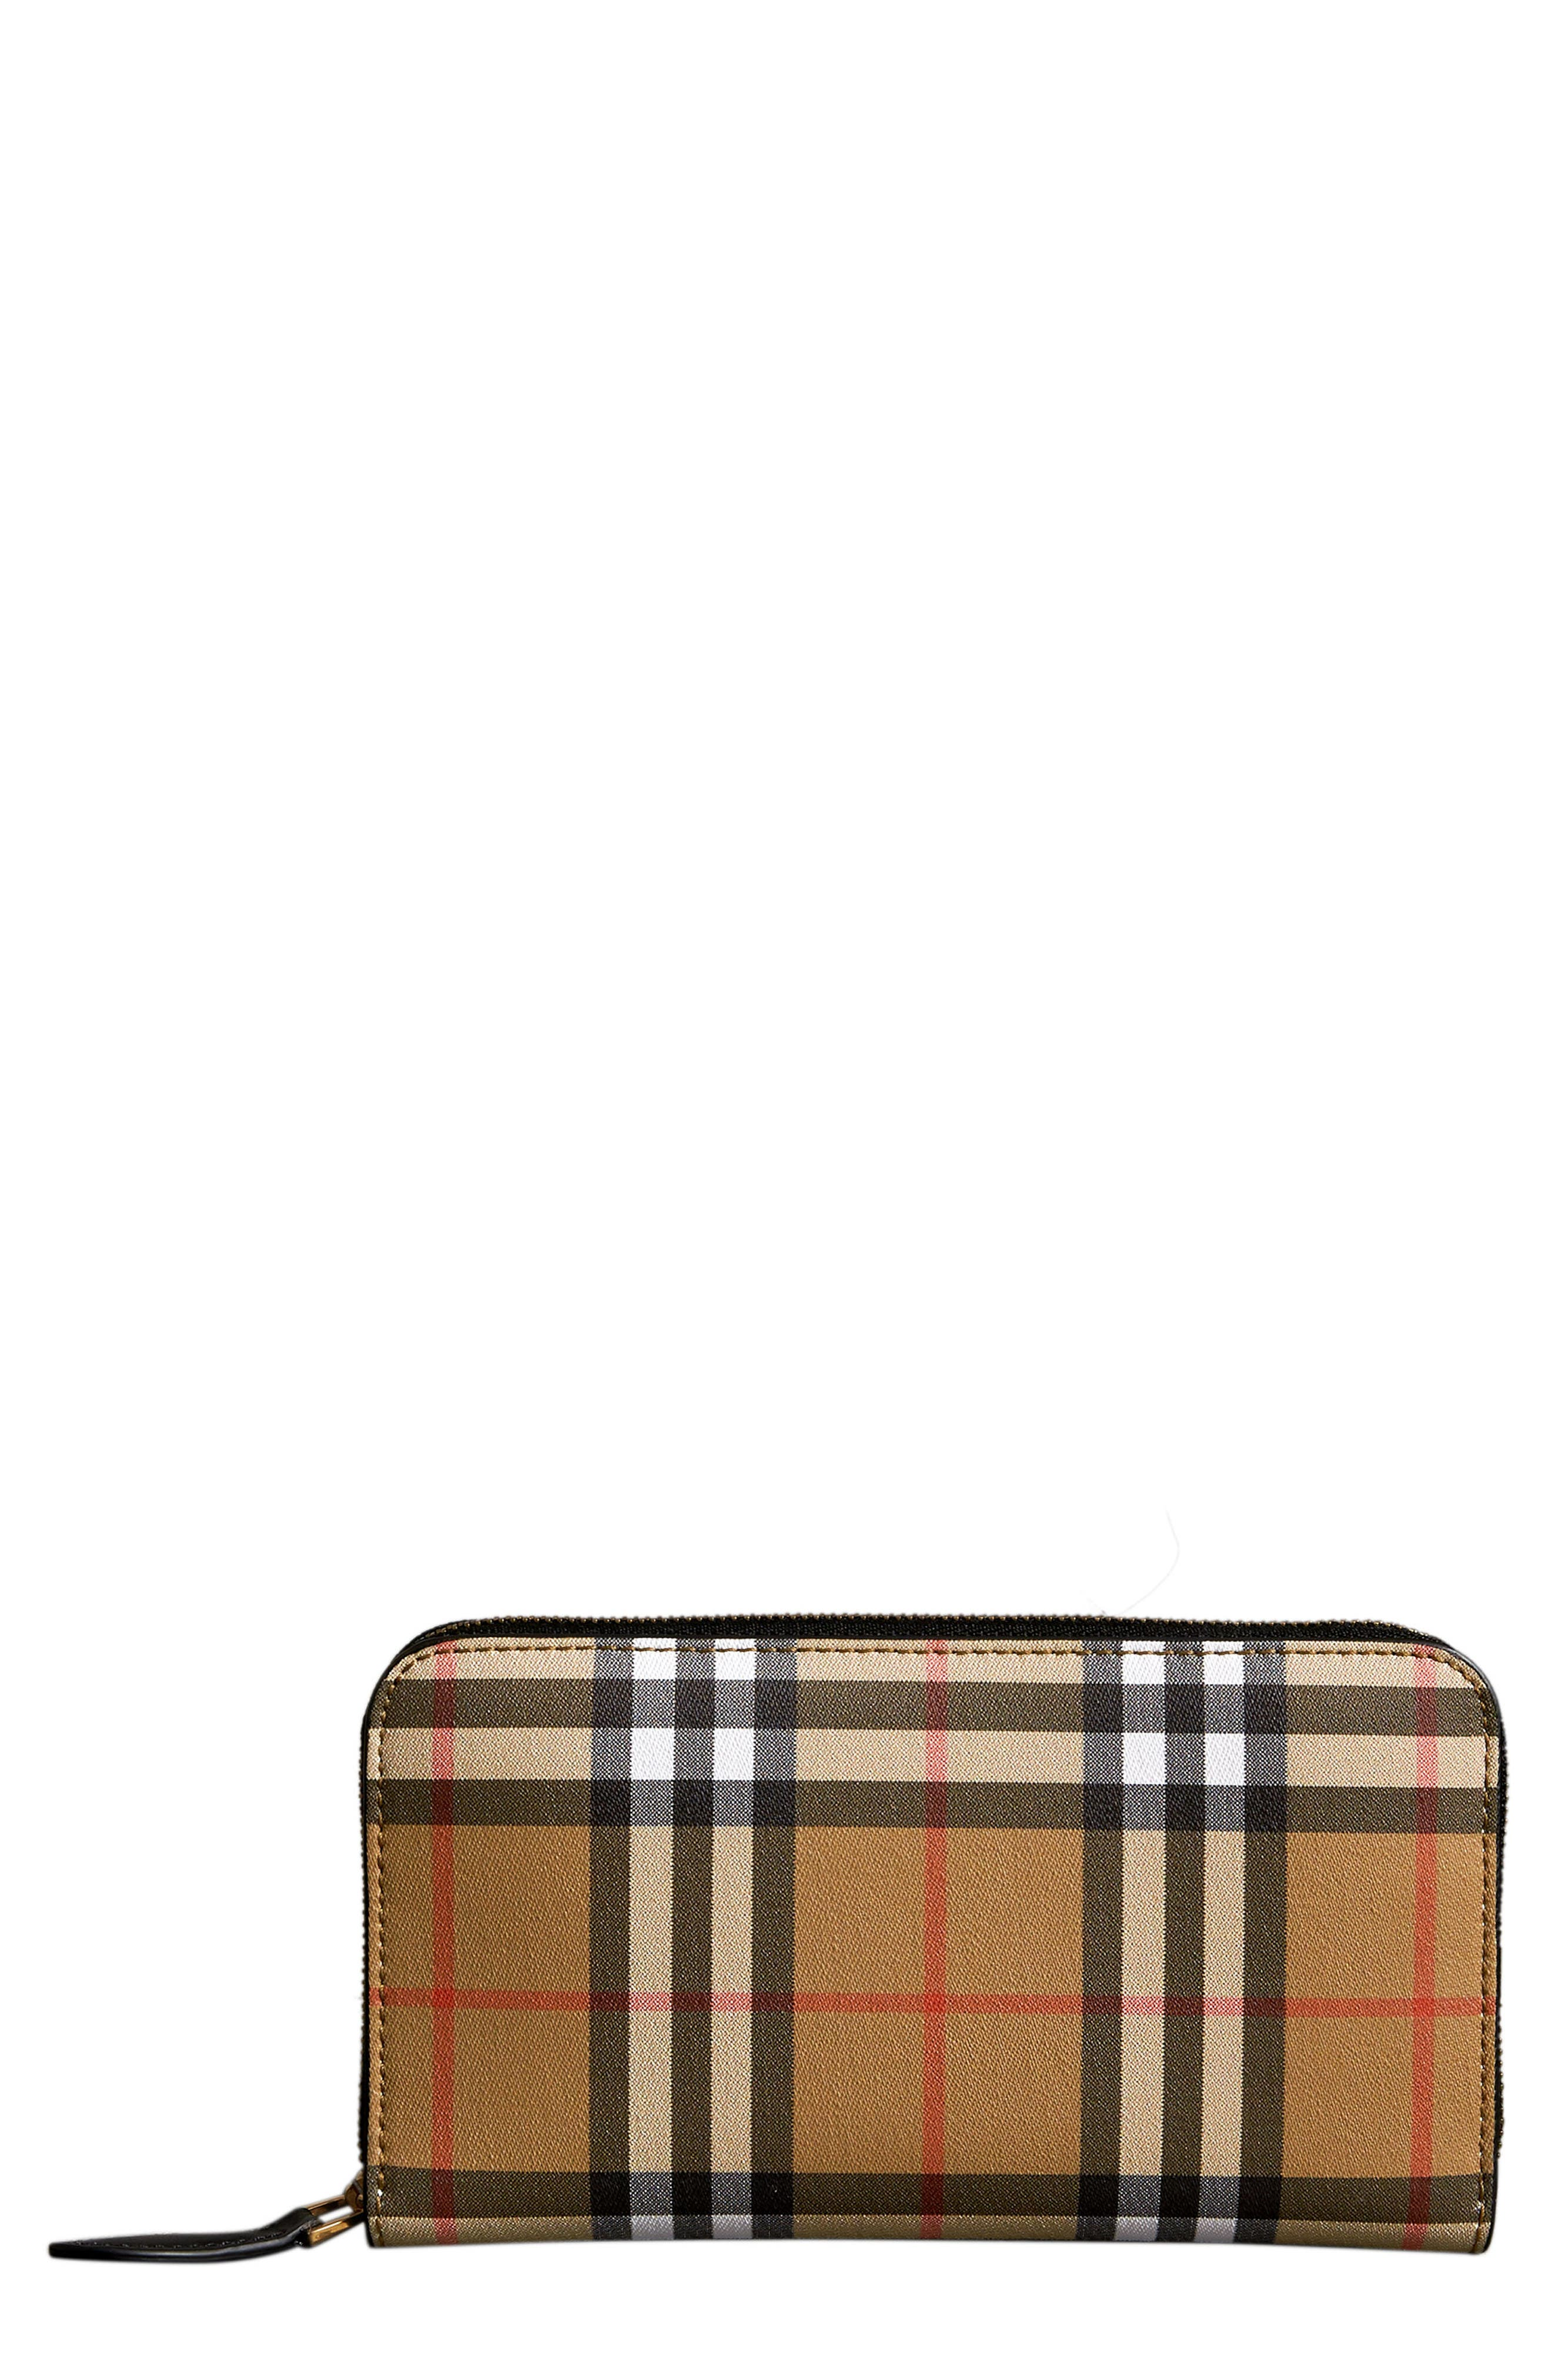 BURBERRY Elmore Vintage Check Leather Zip Around Wallet, Main, color, TAN/ BLACK